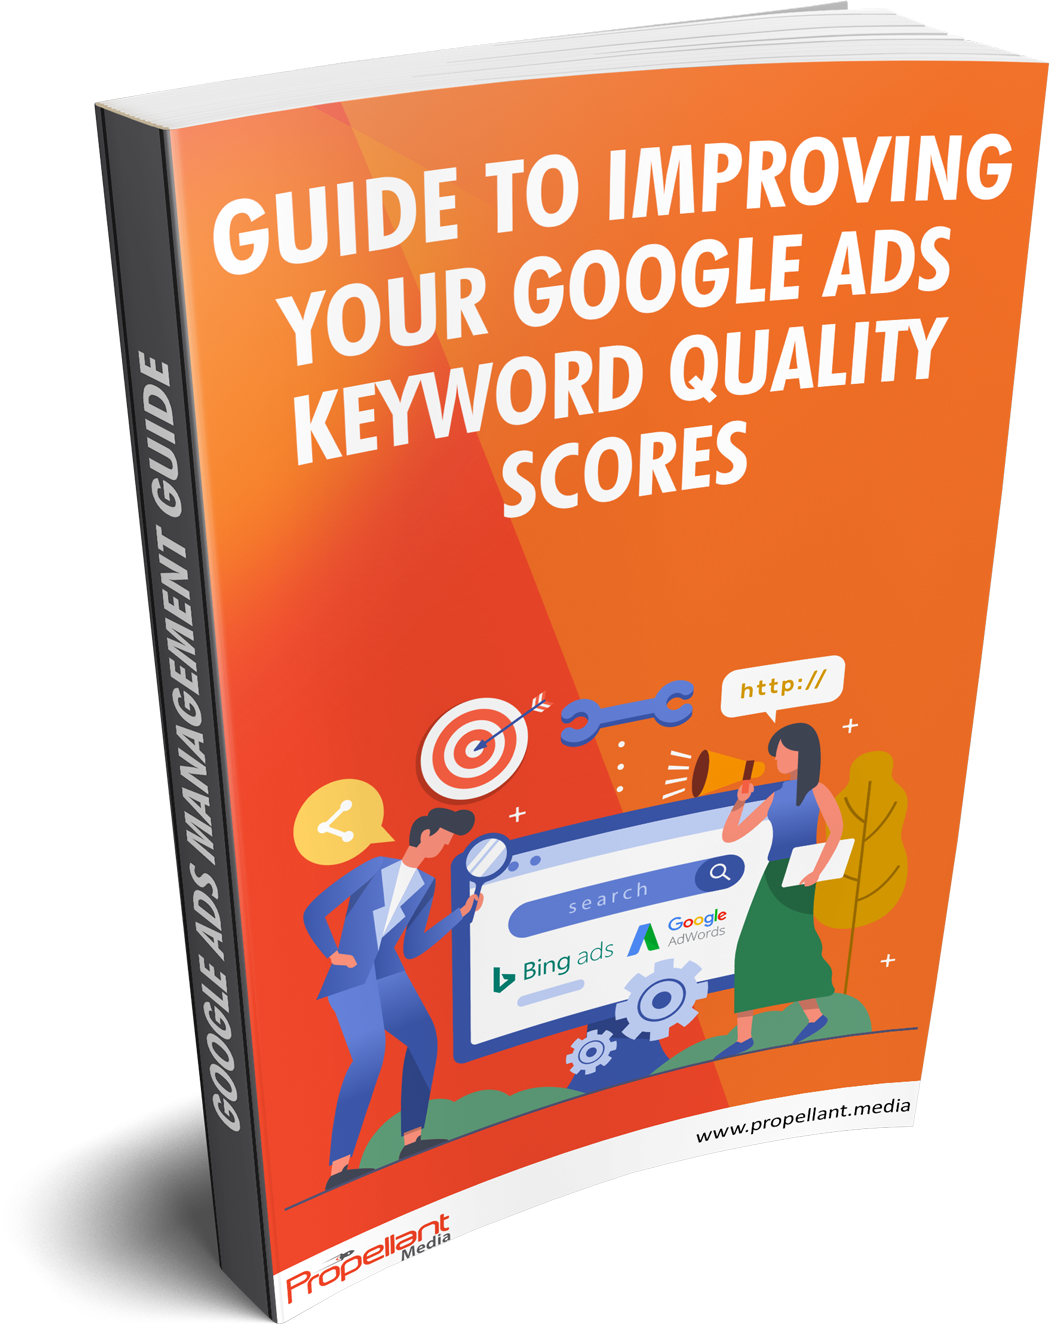 Guide To Improving Your Google Ads Keyword Quality Scores